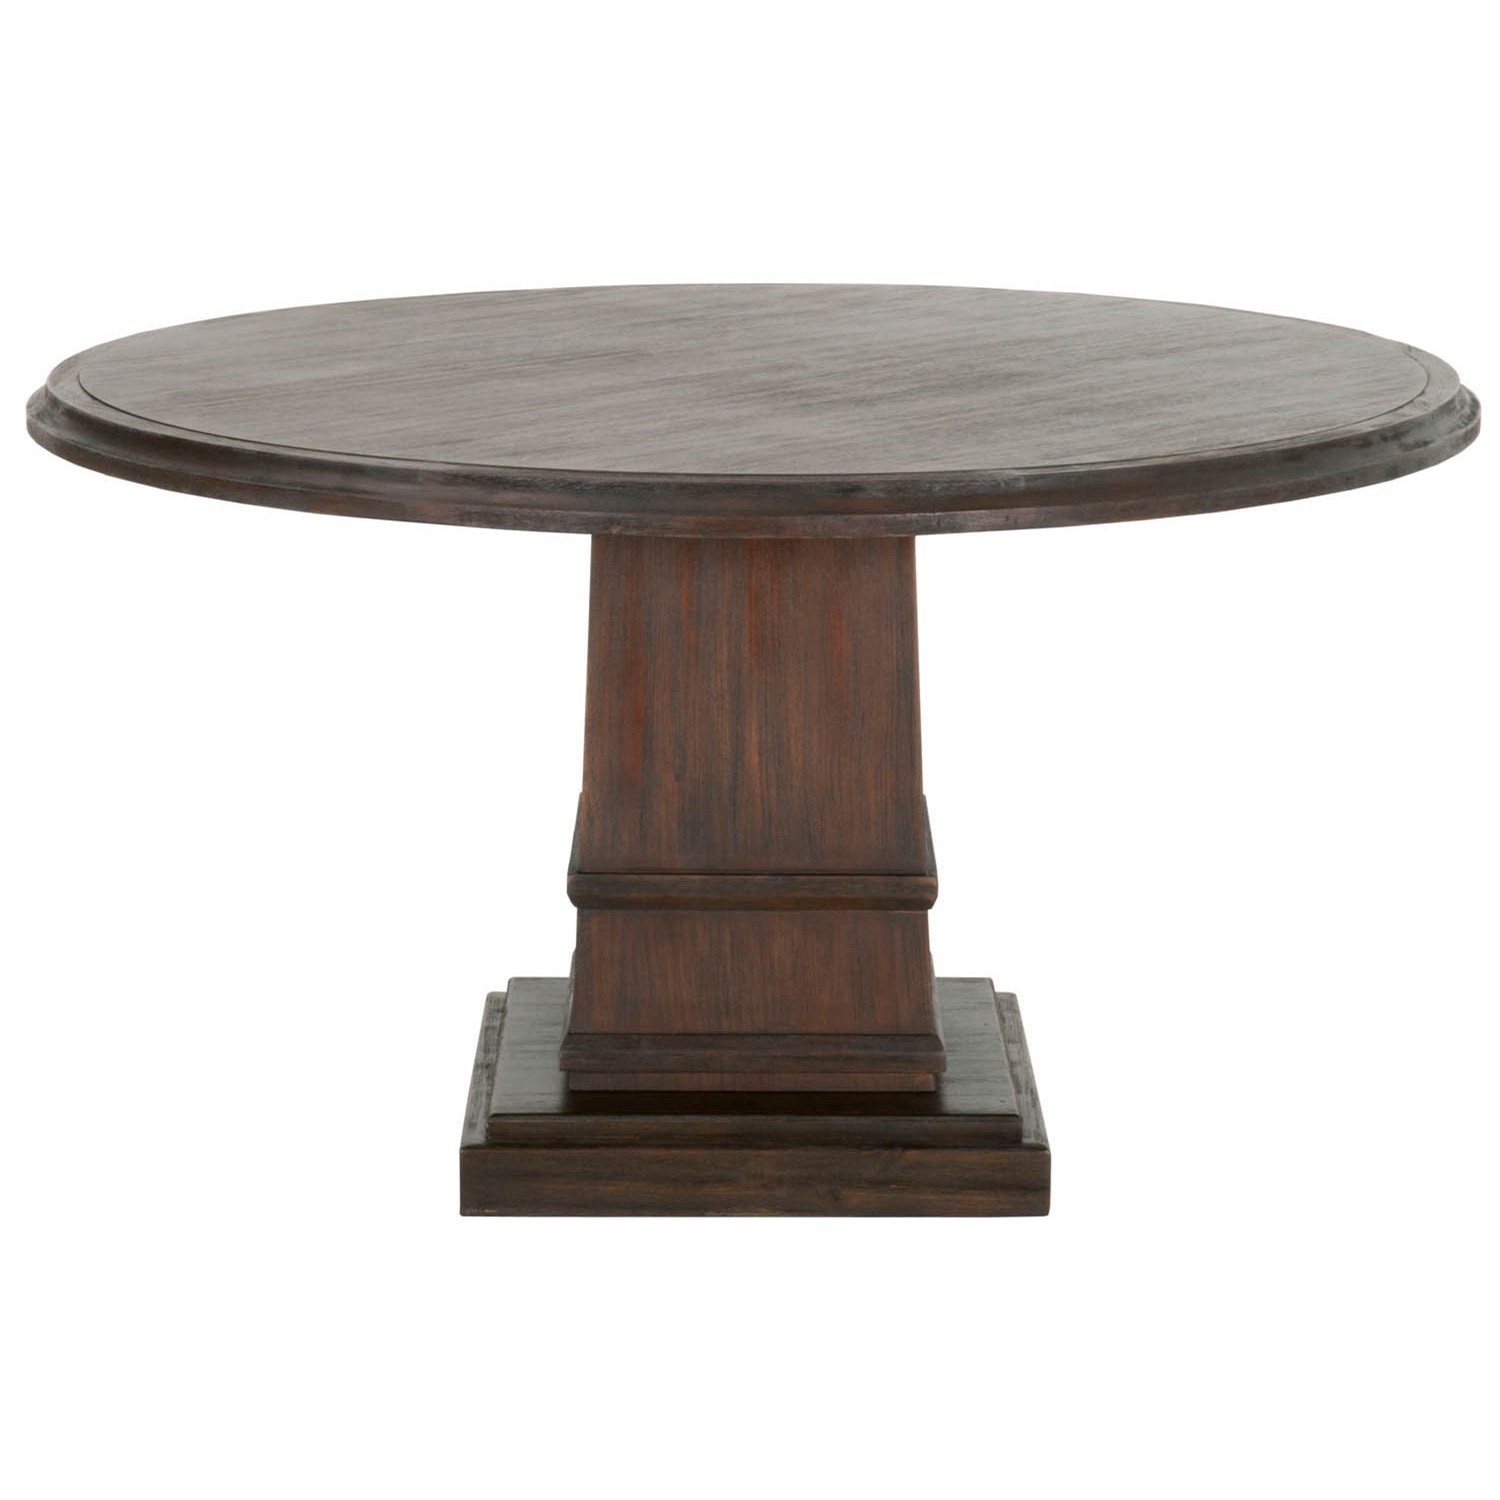 """Traditions Hudson 54"""" Round Dining Table by Orient Express Furniture at Baer's Furniture"""